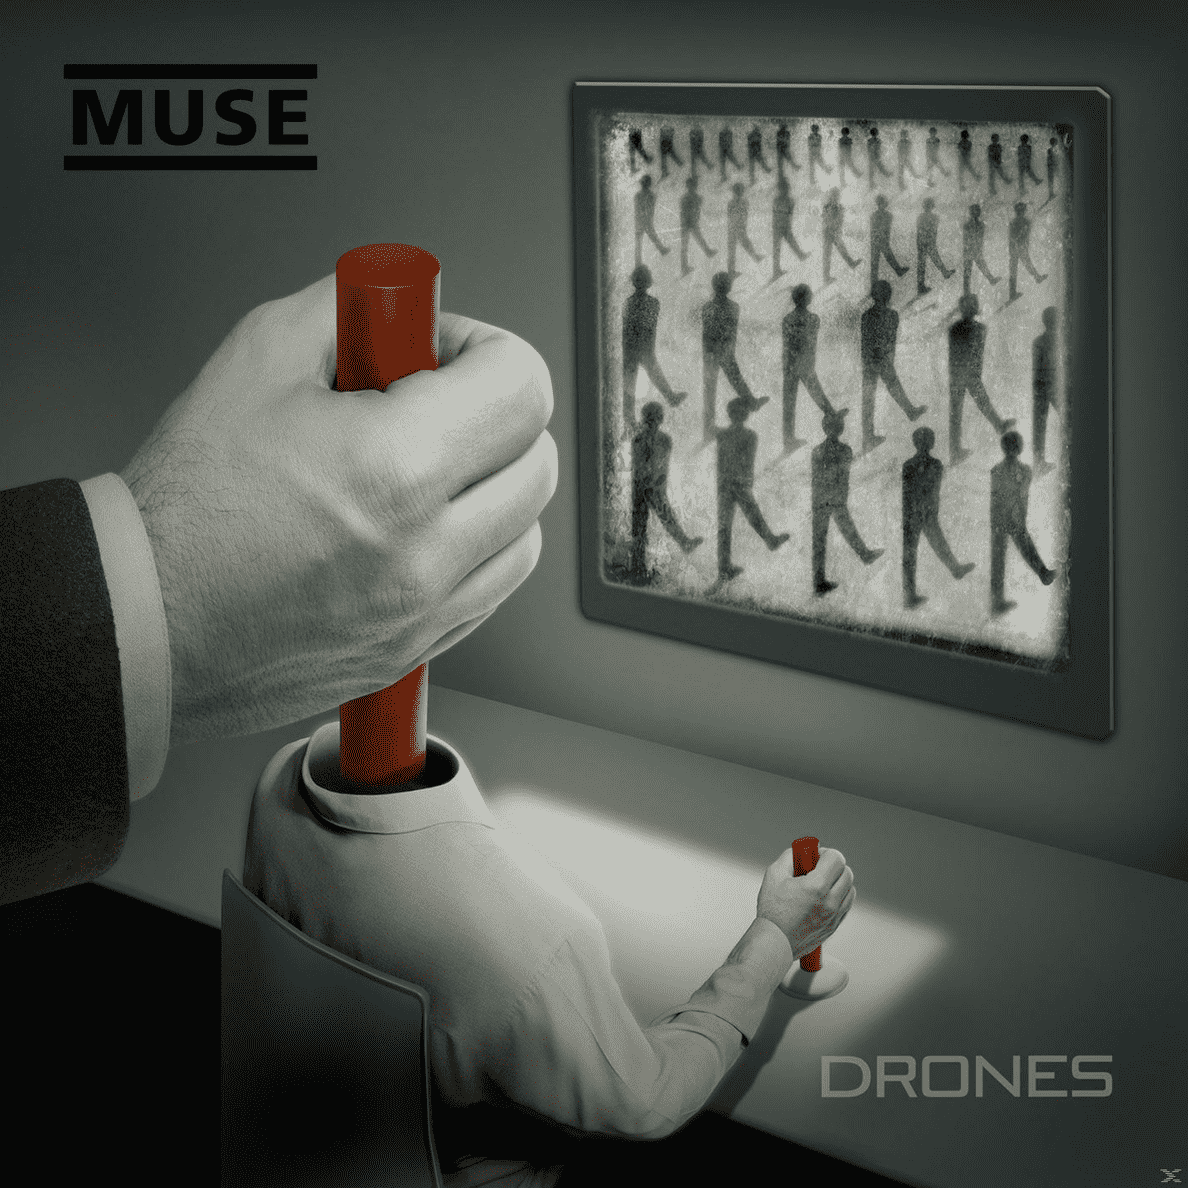 Drones (Limited Edition) Muse auf CD